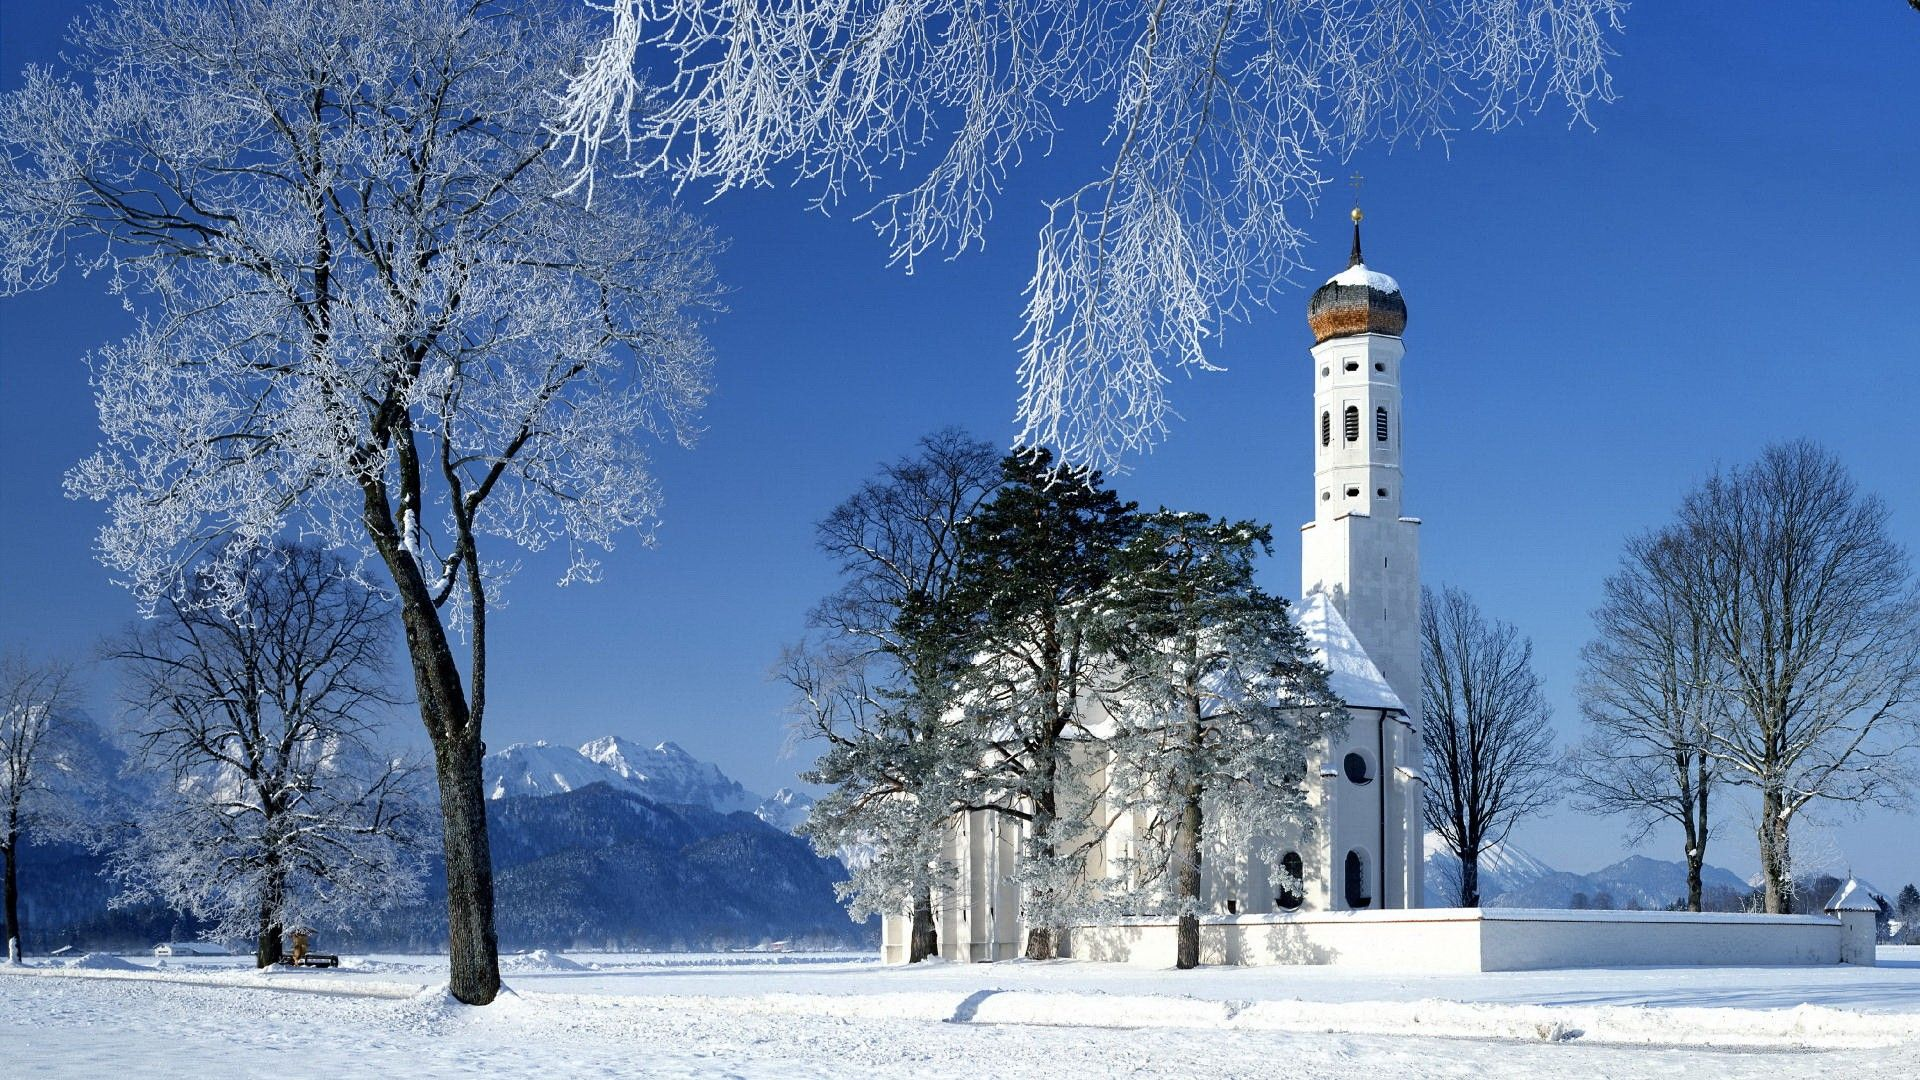 Winter Snow Scenes Cool Wallpaper